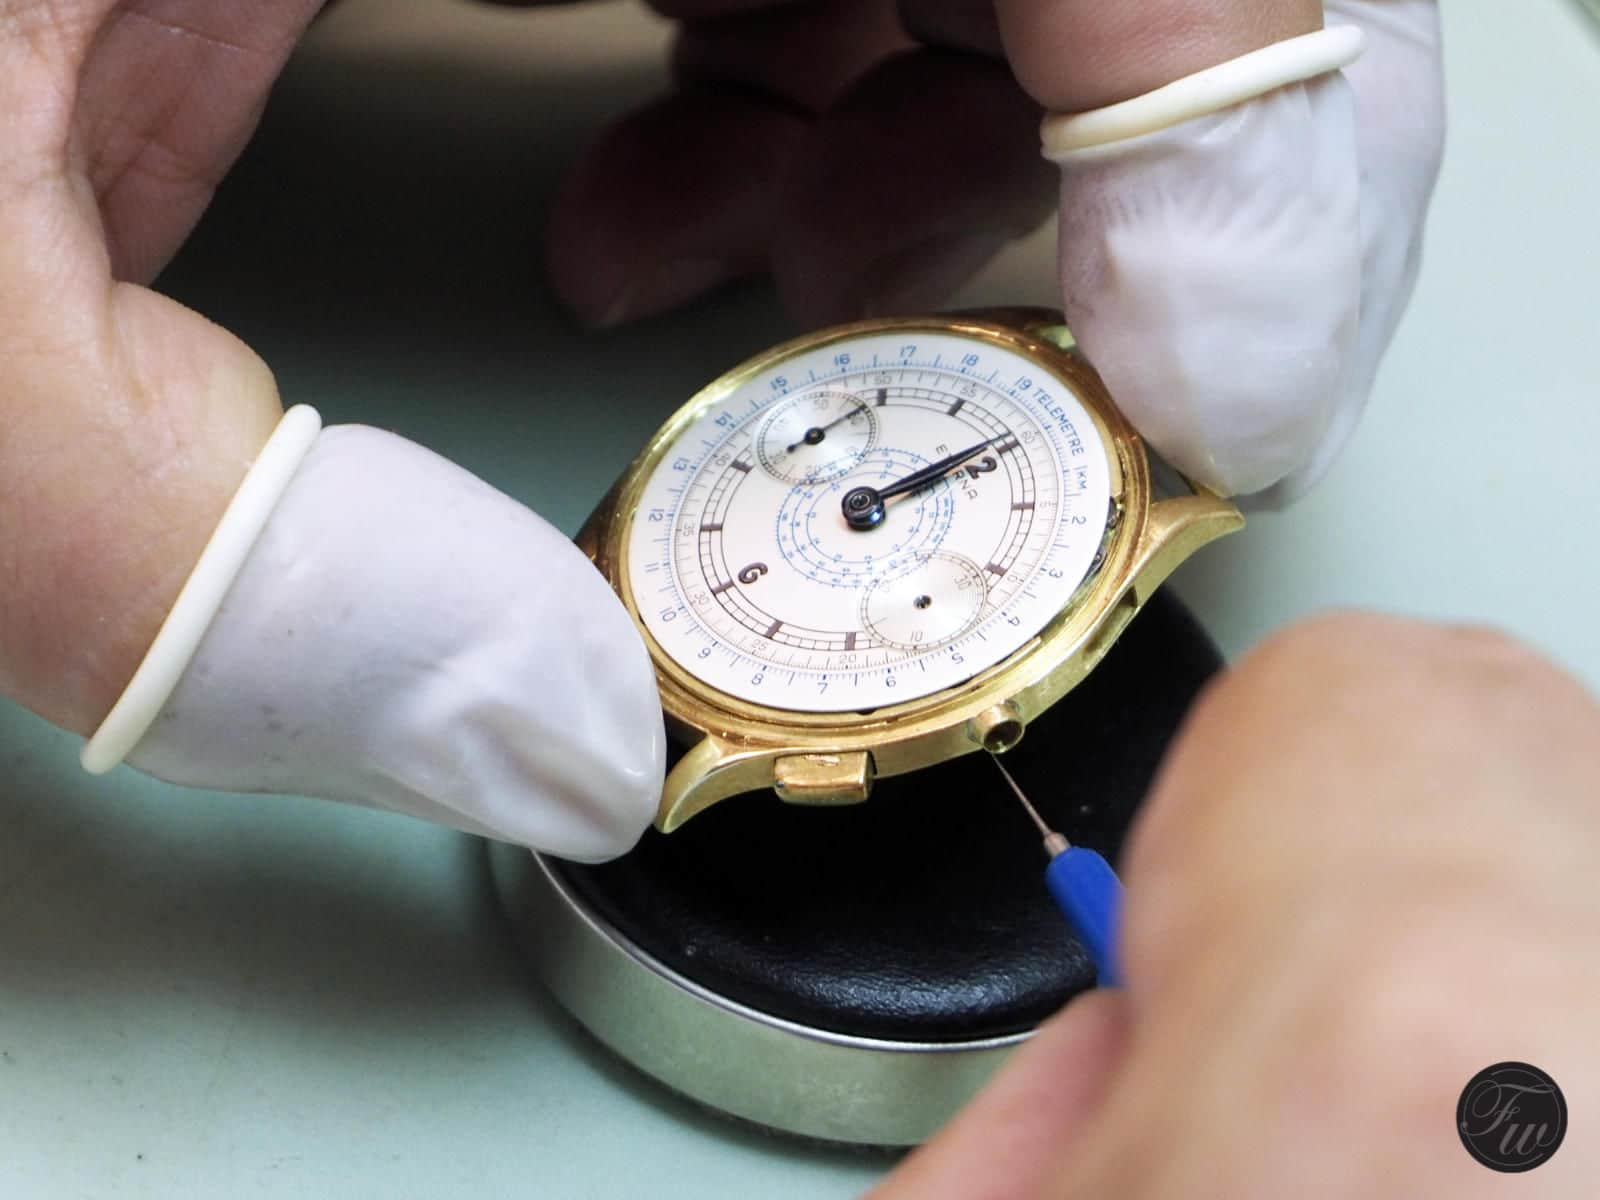 chronograph service by Kalle Slaap